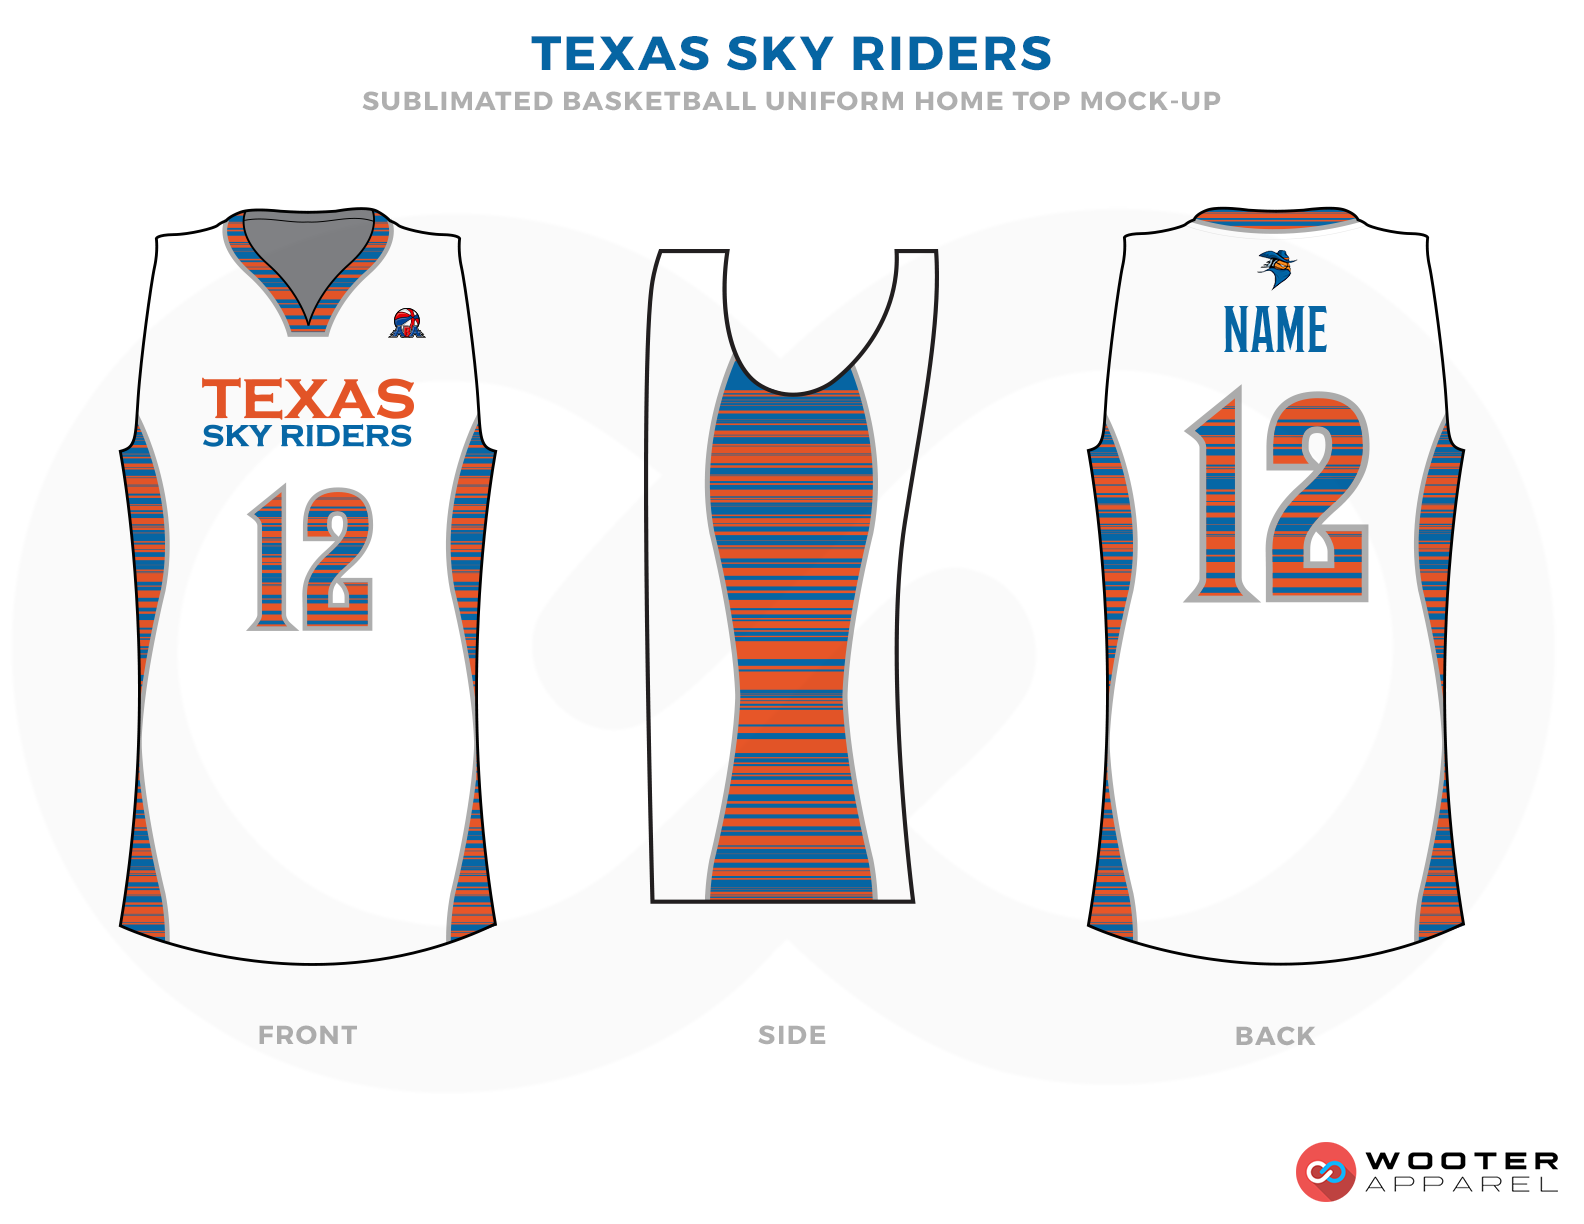 TEXAS SKY RIDERS White Orange and Blue Basketball Uniforms, Shirts